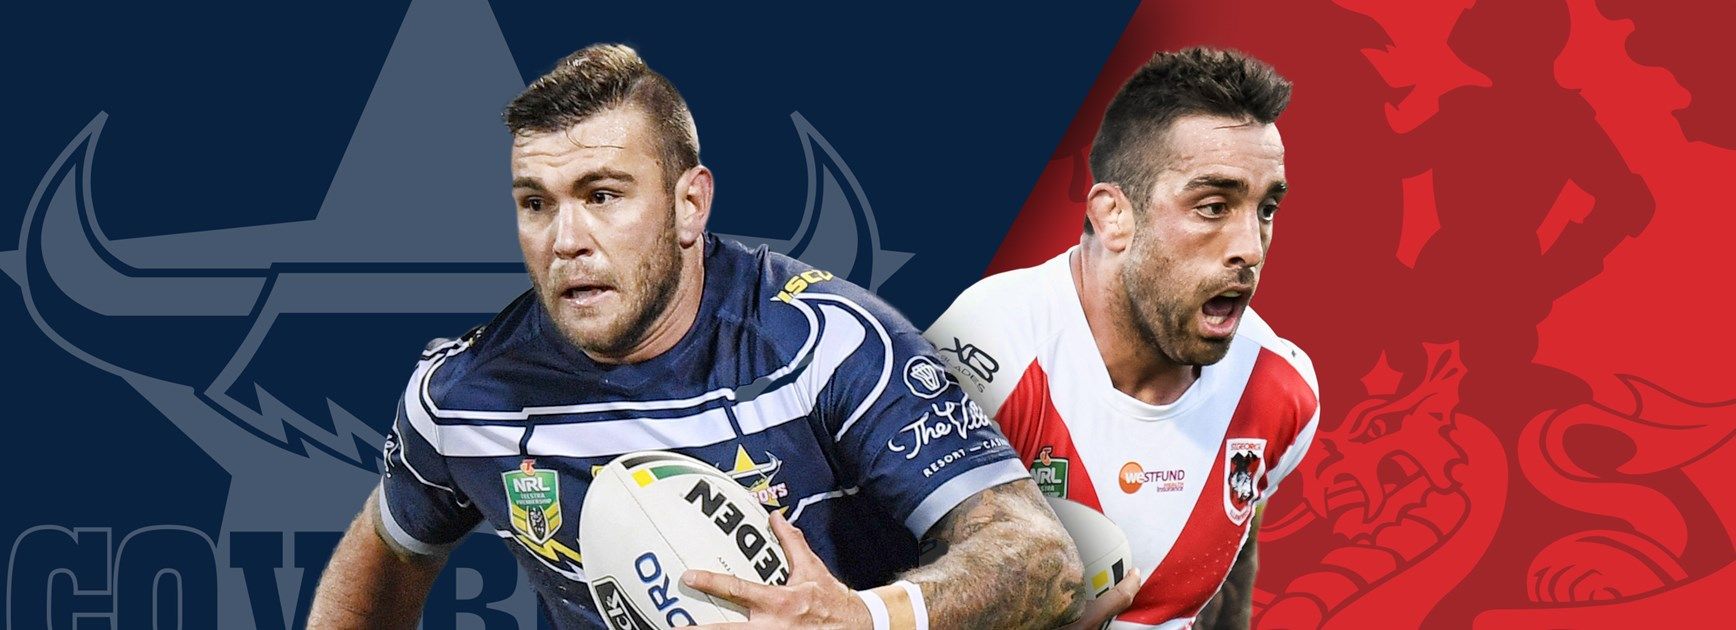 Cowboys v Dragons: Jake Clifford to debut; Frizell, Nene out